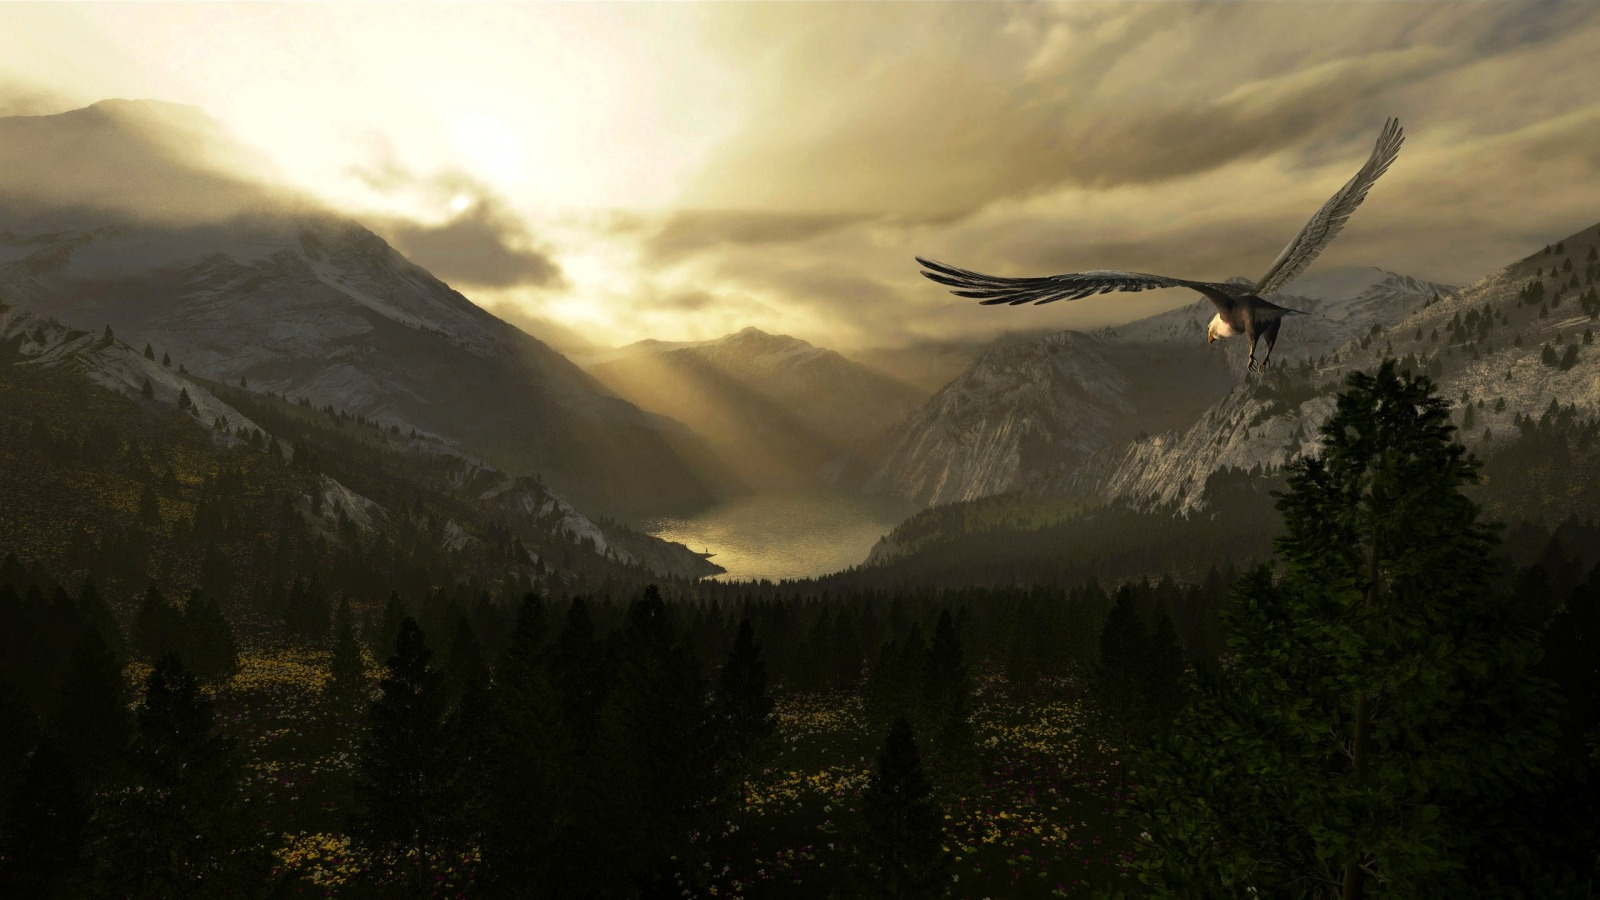 valley-of-dreams-mountains